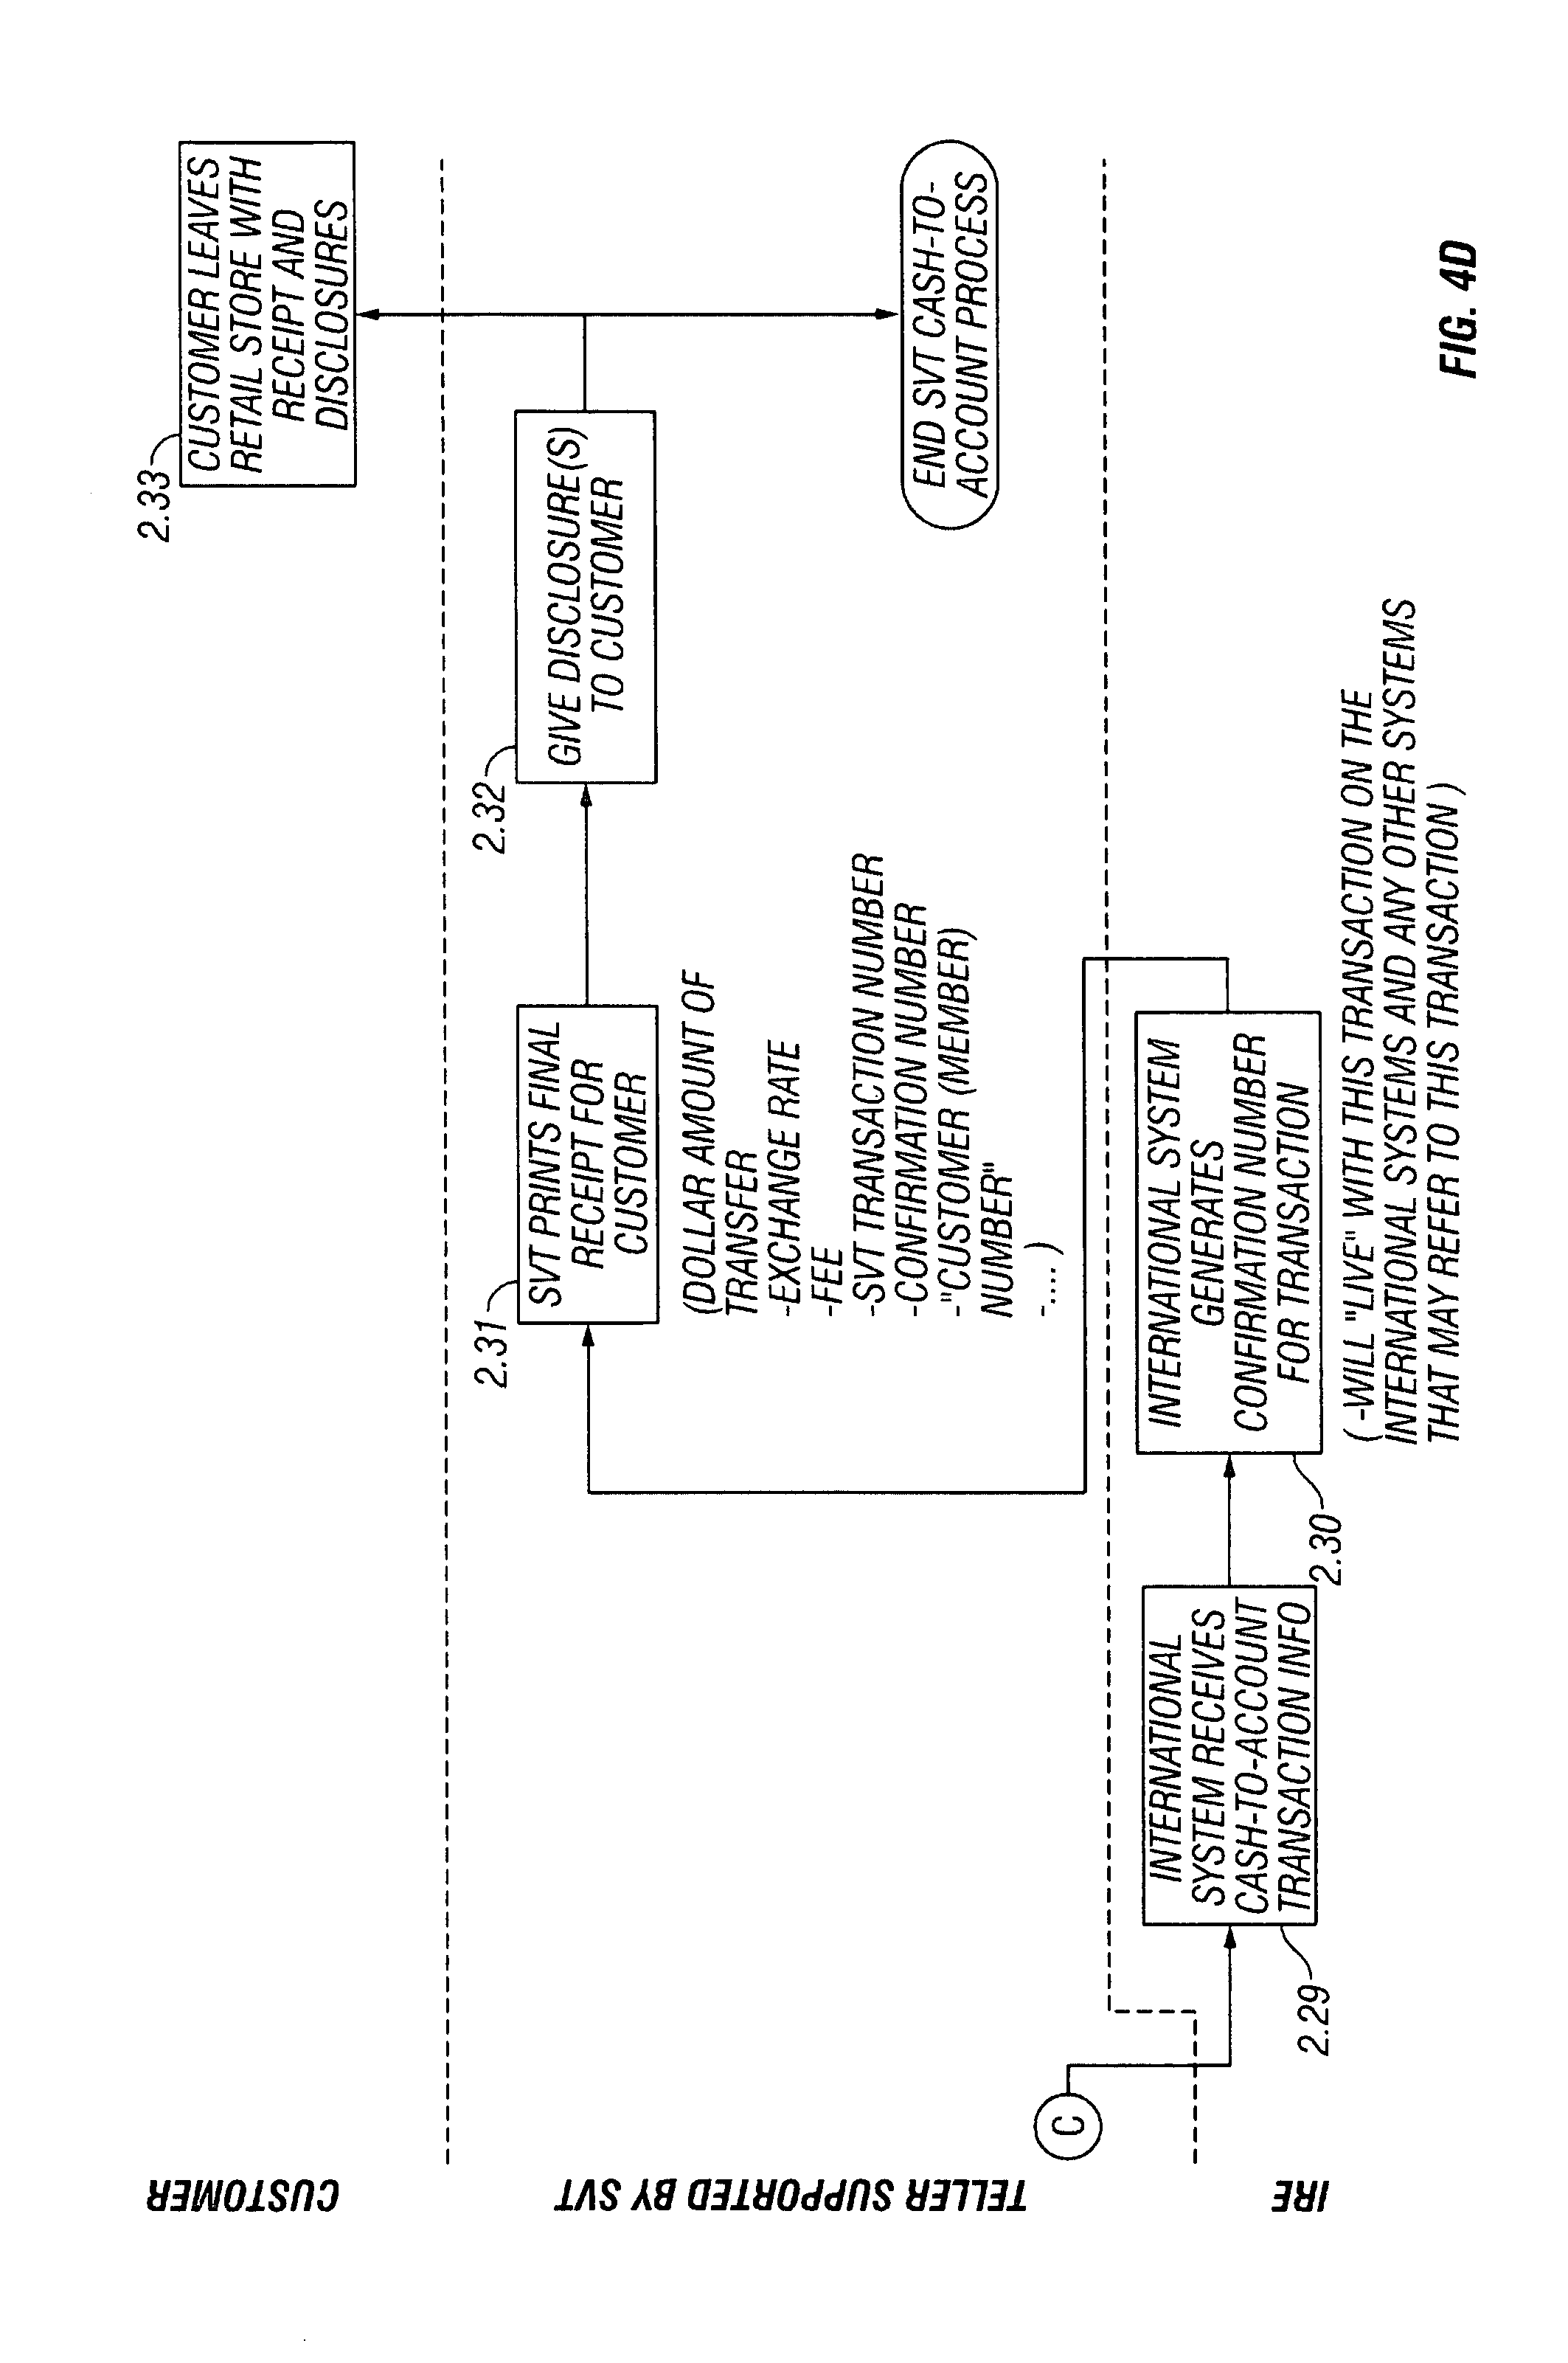 Rental Deposit Receipt Pdf Patent Us  Global Remittance Platform  Google Patents Invoice Proposal Template Pdf with What An Invoice Looks Like Word Patent Drawing My Invoices And Estimates Pdf